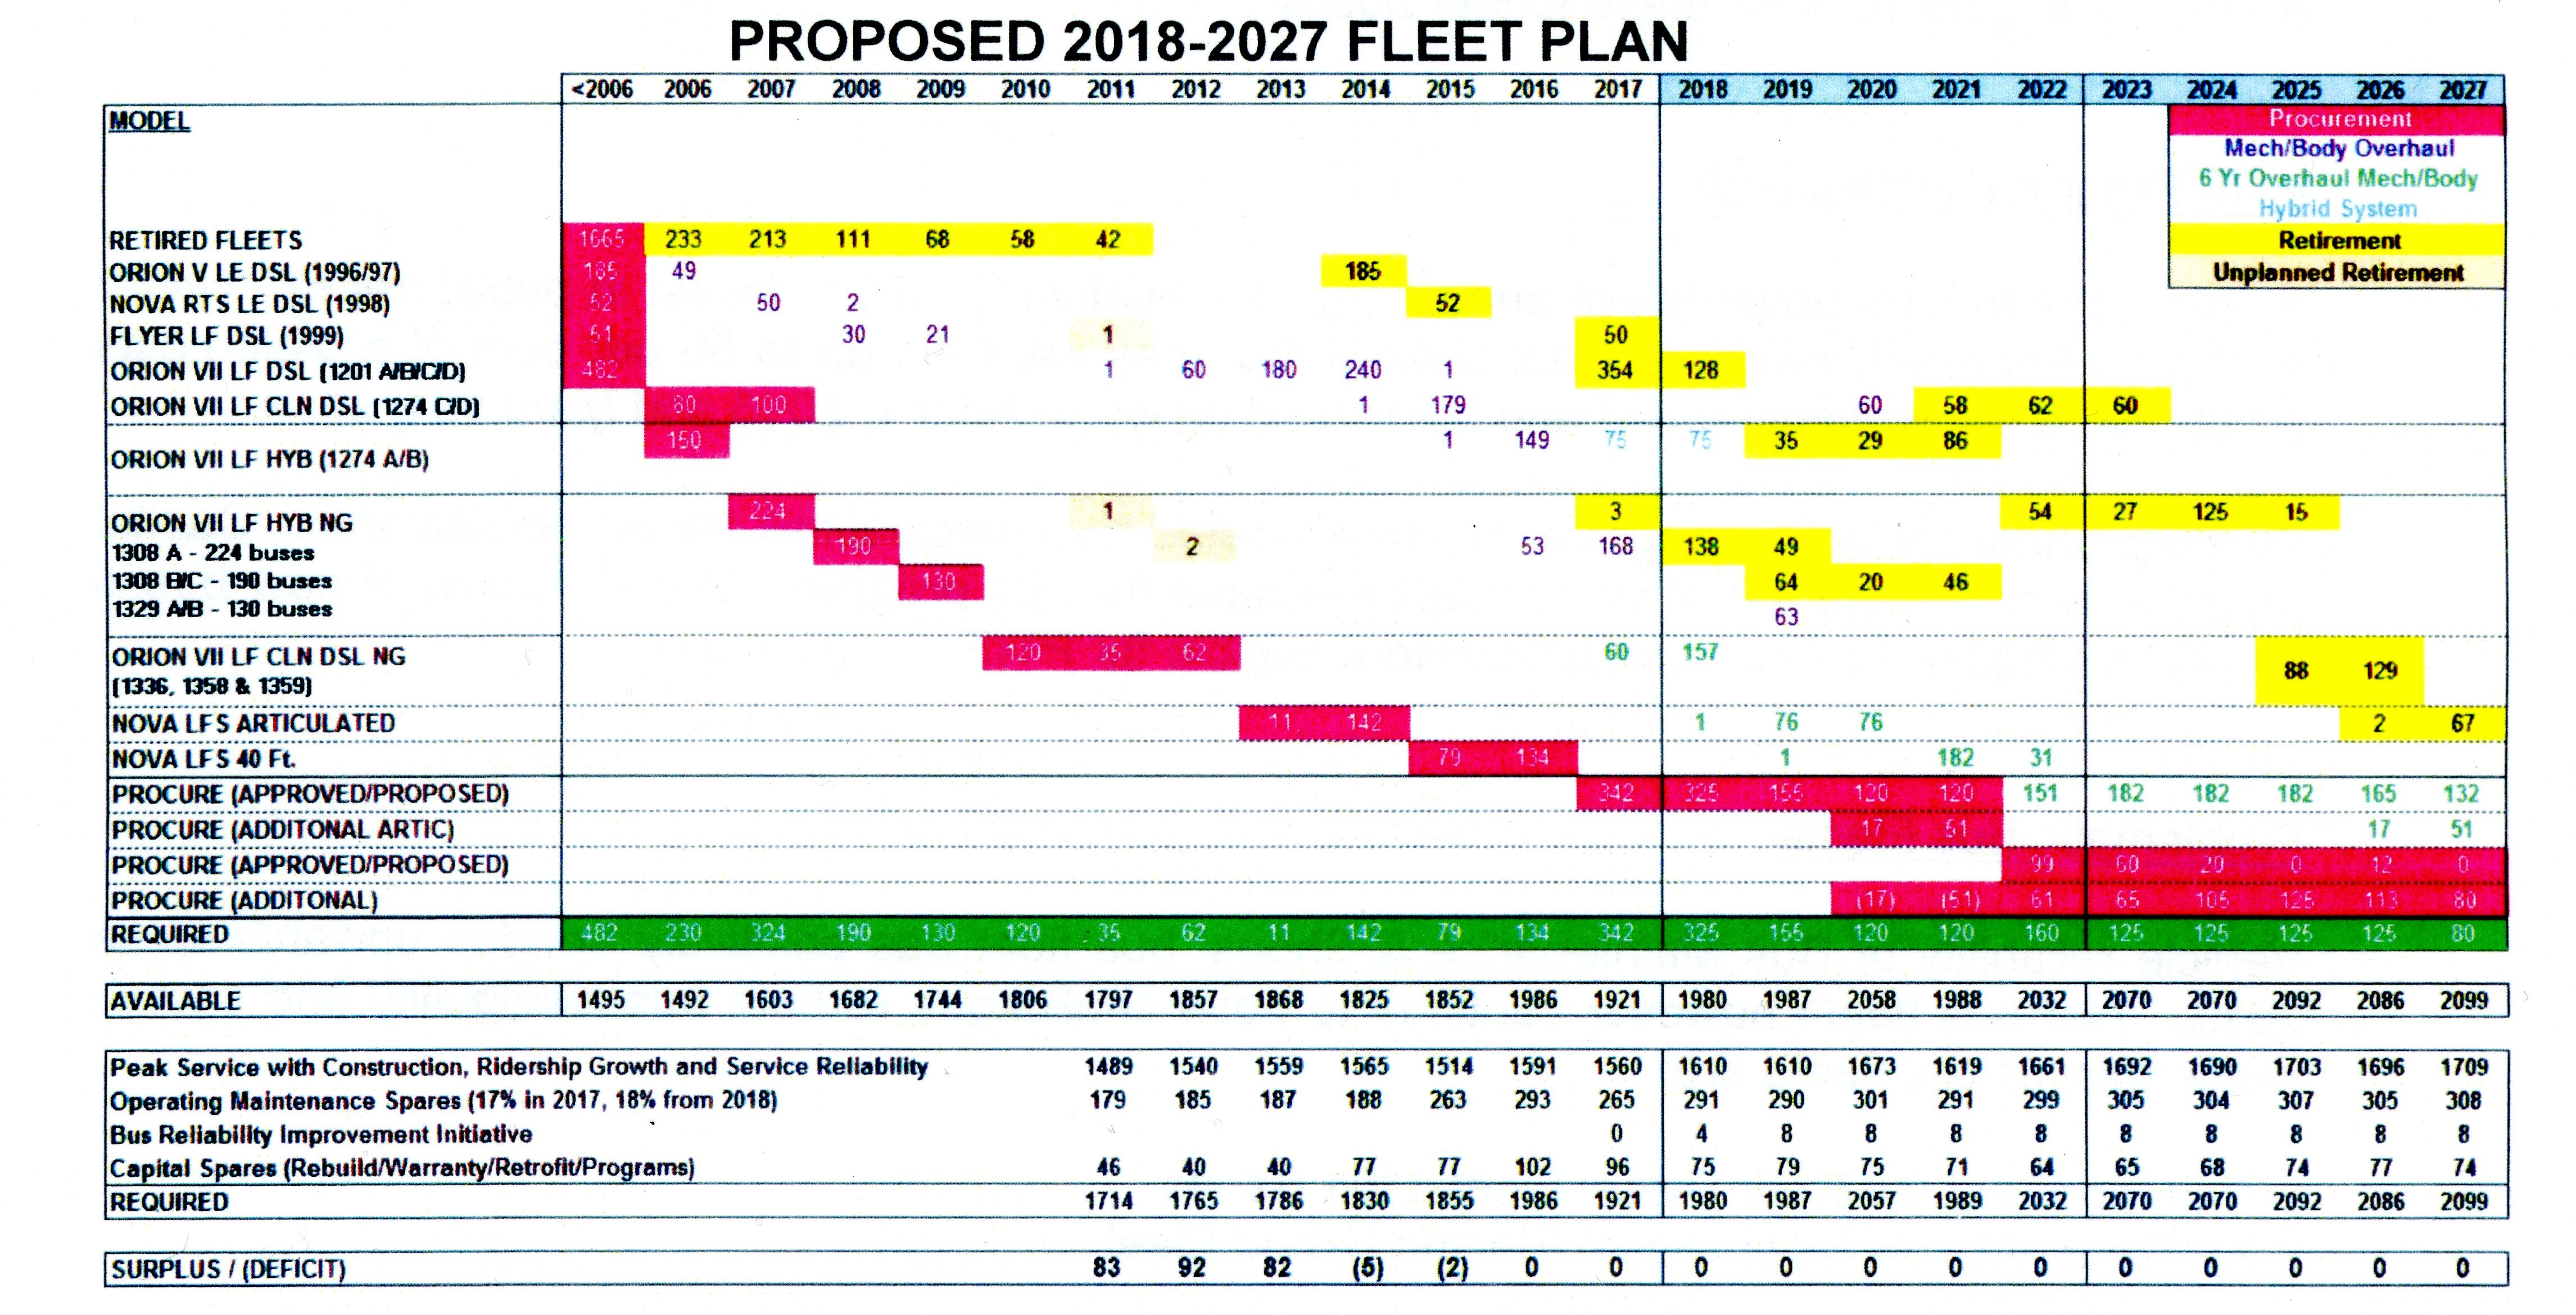 Ttc 2018 Capital Budget 1 Fleet Plans Steve Munro New Flyer Bus Wiring Diagram Click On The Image Below To Get A Larger Version My Apologies For Colour Contrast Problem Its Ttcs Chart